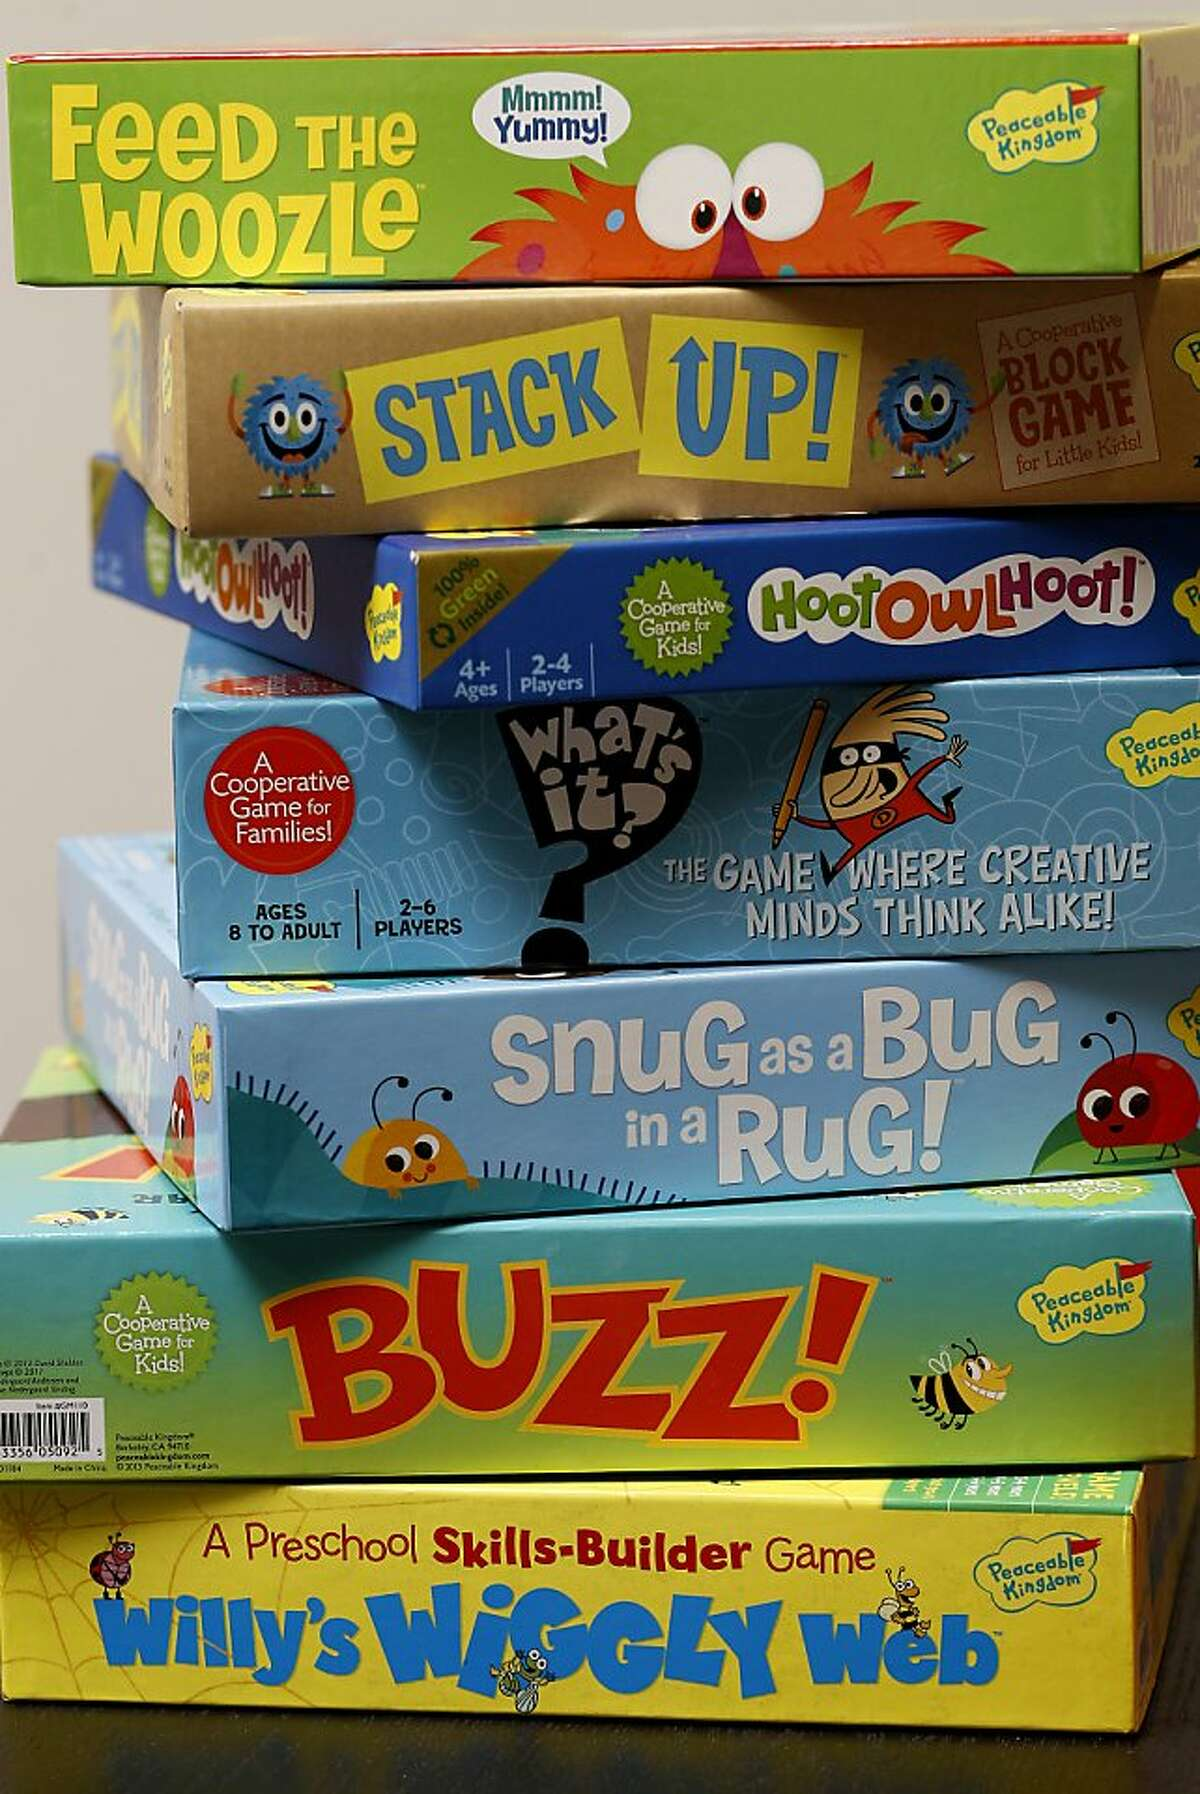 A selection of some board games offered by Peaceable Kingdom for Christmas in Berkeley, Calif. Peaceable Kingdom designs cooperative board games, cards and stickers for children from their offices in Berkeley, Calif.